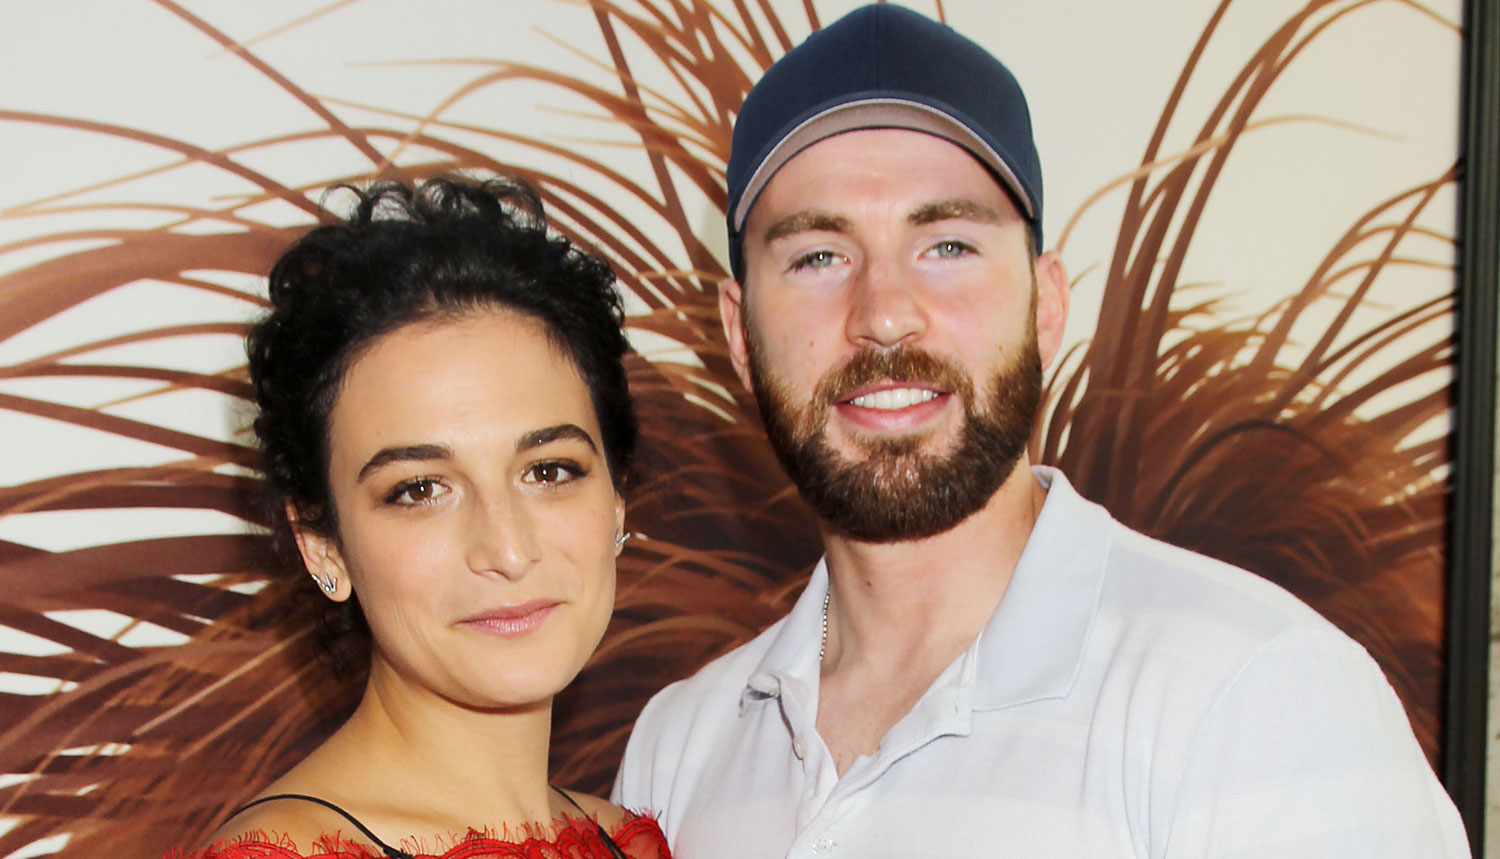 Chris Evans & Girlfriend Jenny Slate Make Red Carpet Debut!